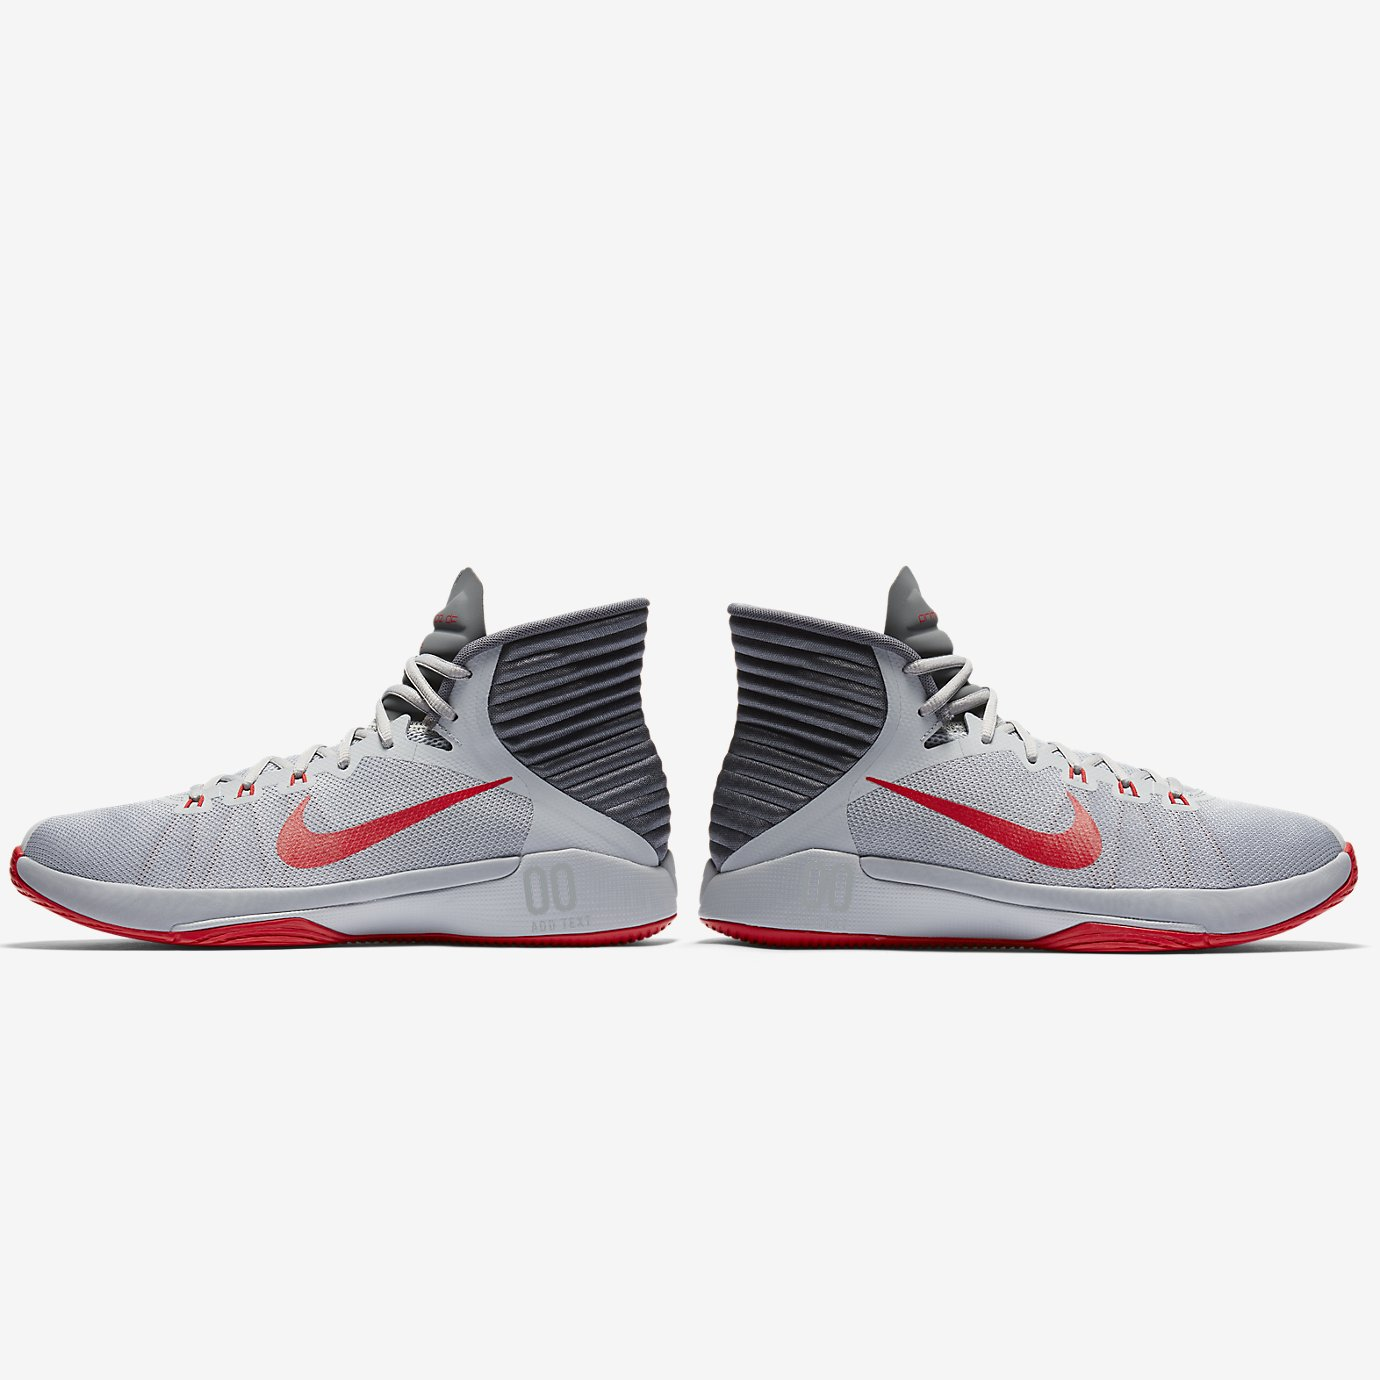 Nike Prime Hype DF Men's Basketball Shoe